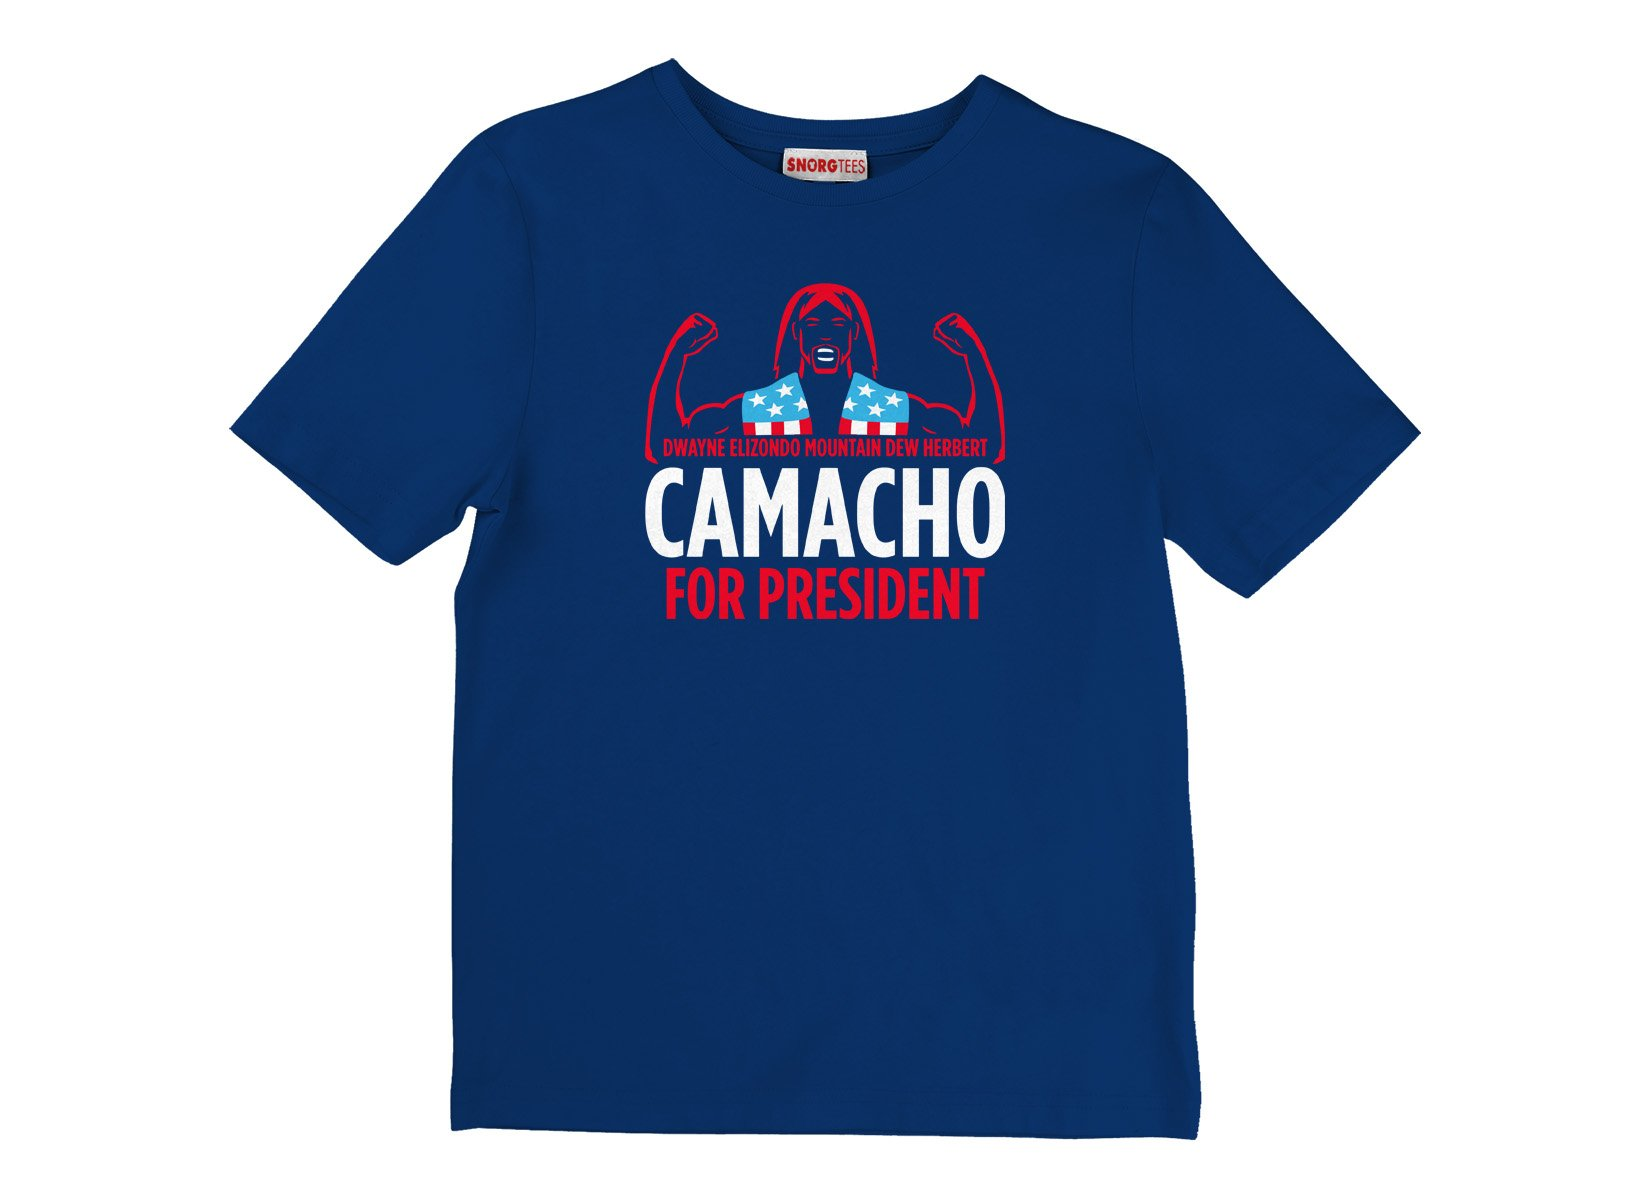 Camacho For President on Kids T-Shirt